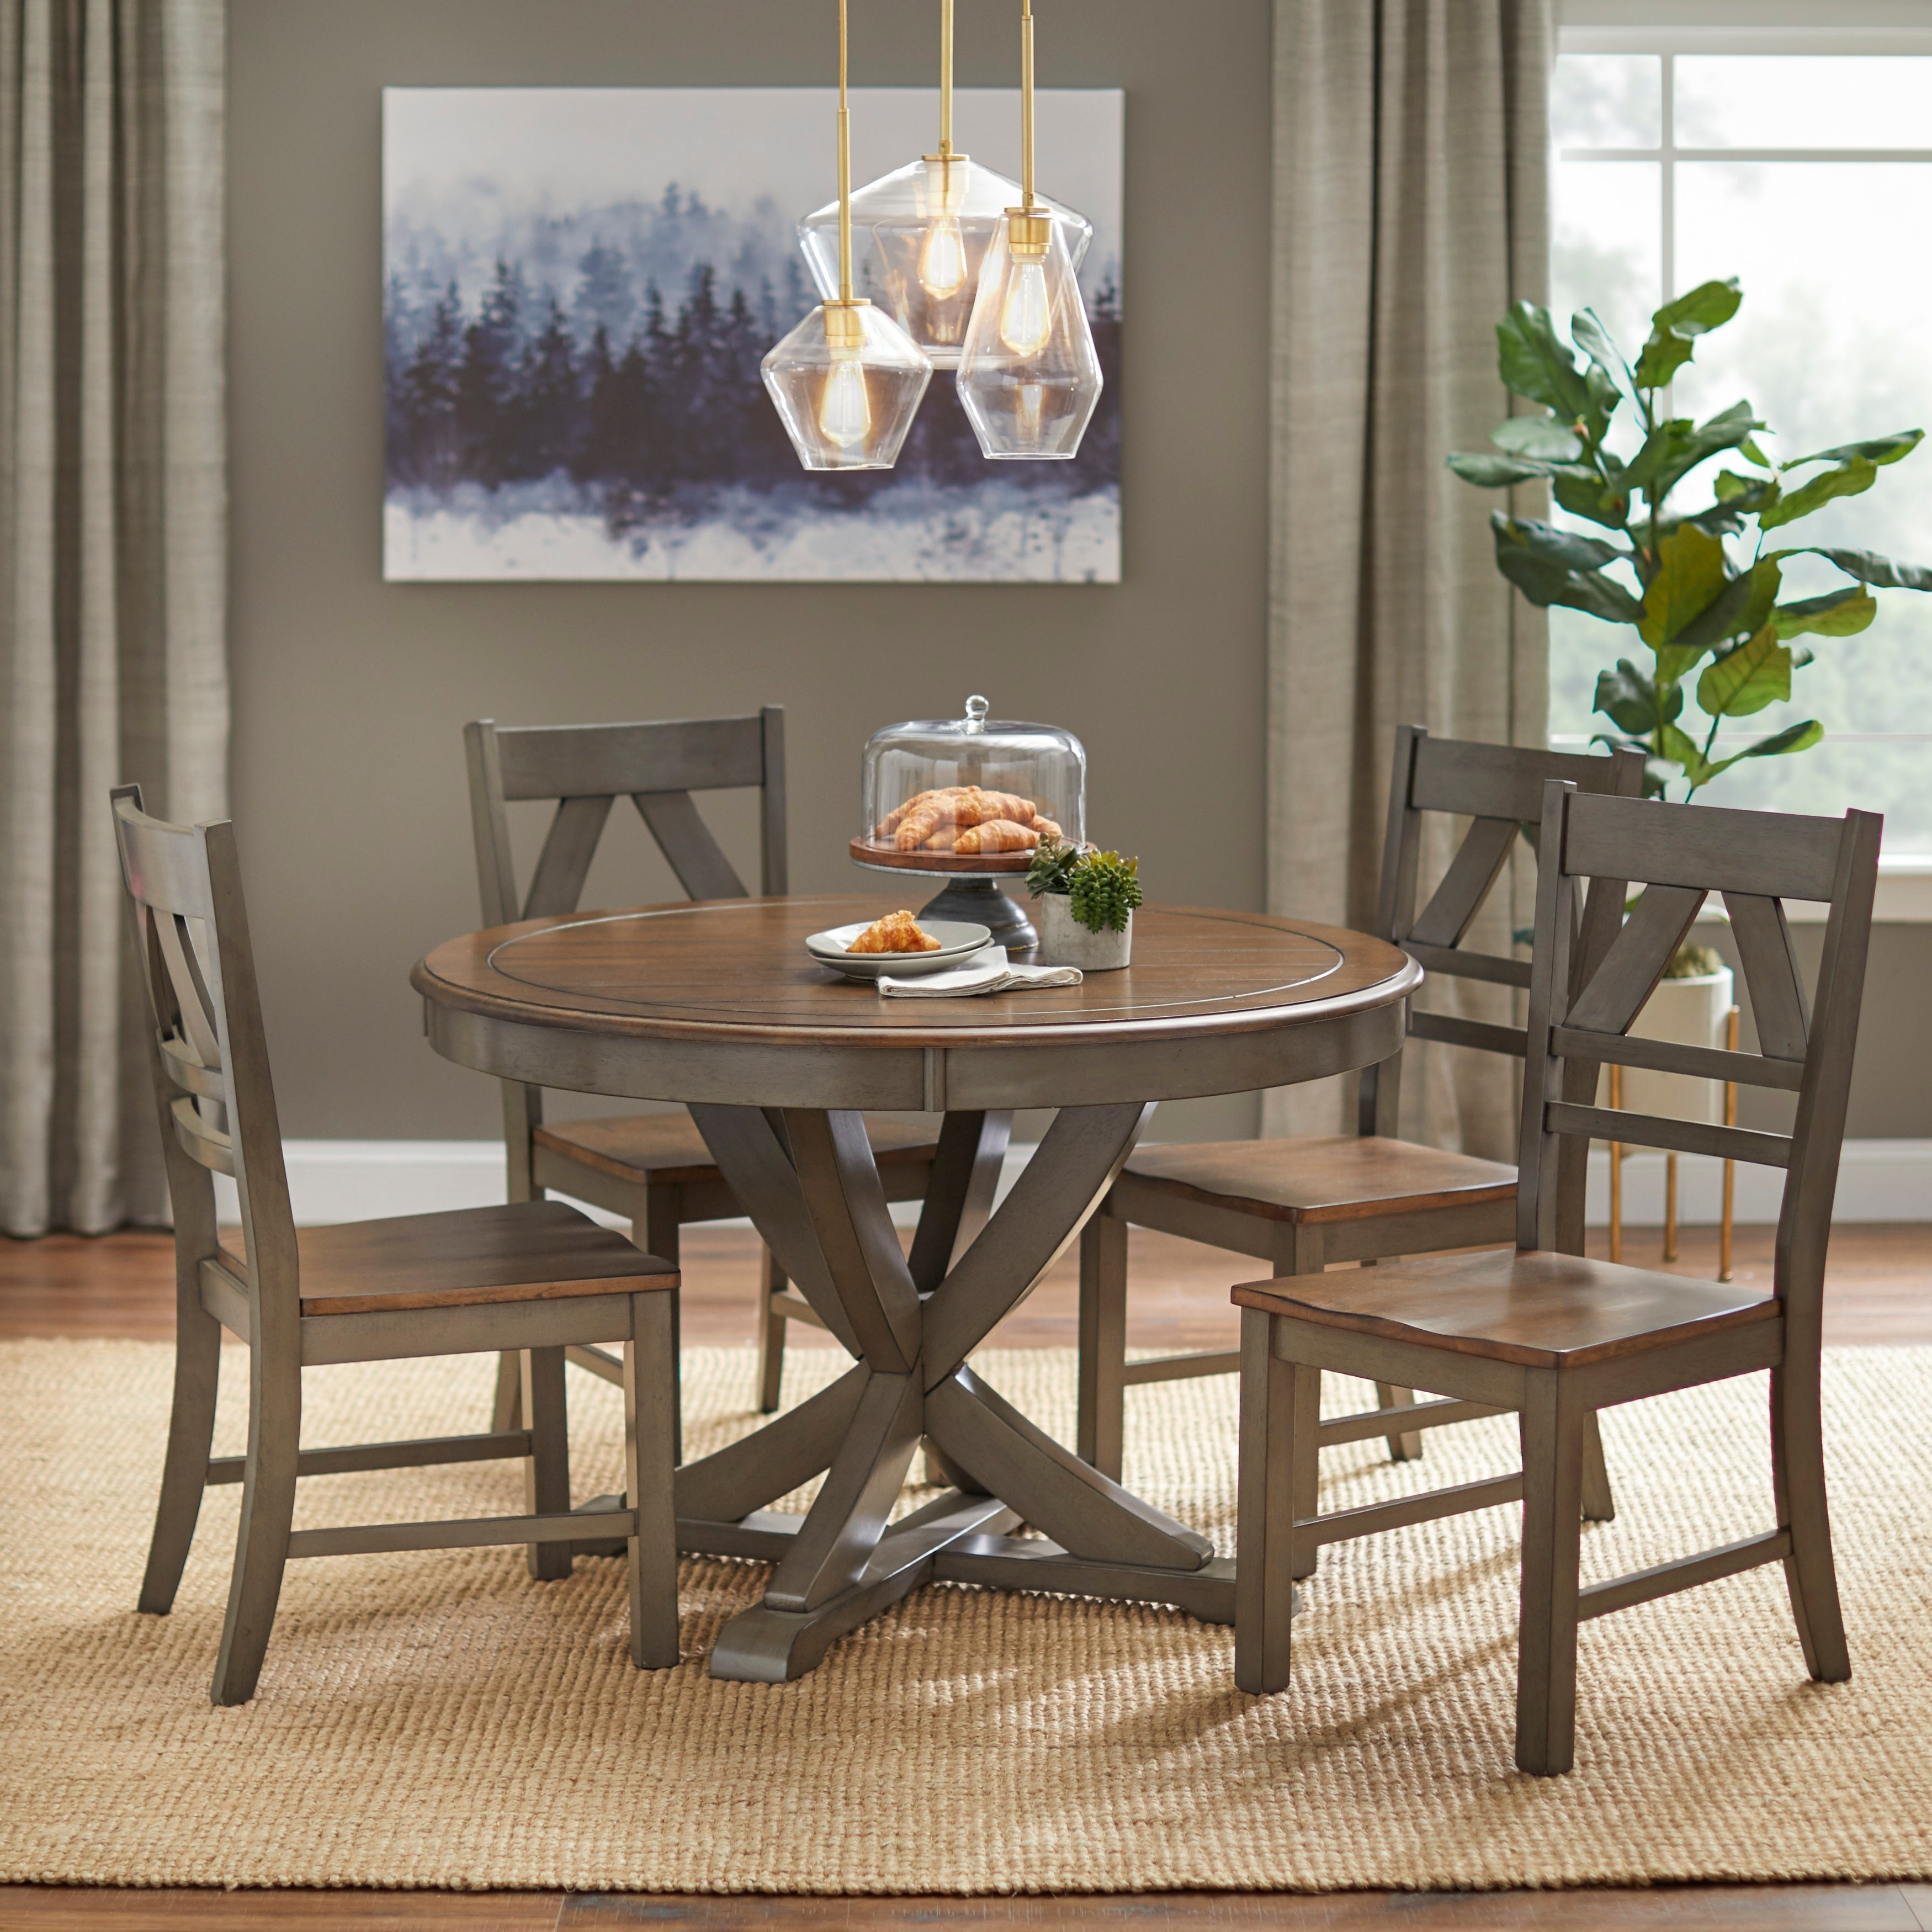 Buy Farmhouse Kitchen & Dining Room Sets Online At Overstock | Our With Current Falmer 3 Piece Solid Wood Dining Sets (View 5 of 20)